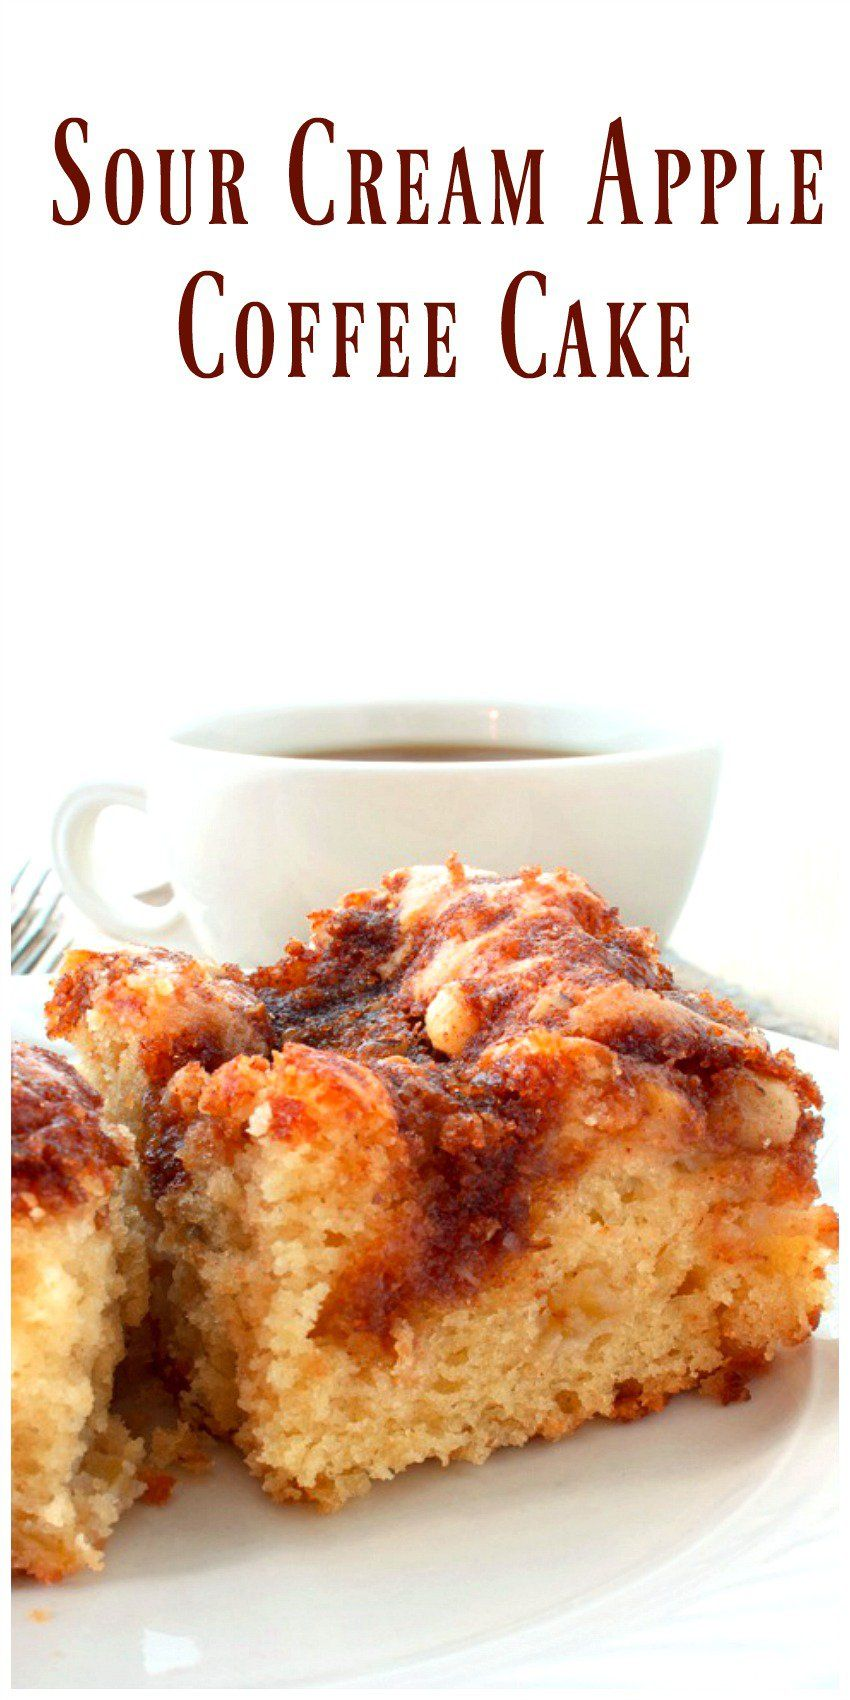 Sour Cream Apple Coffee Cake Sour Cream Recipes Apple Coffee Cakes Sour Cream Cake